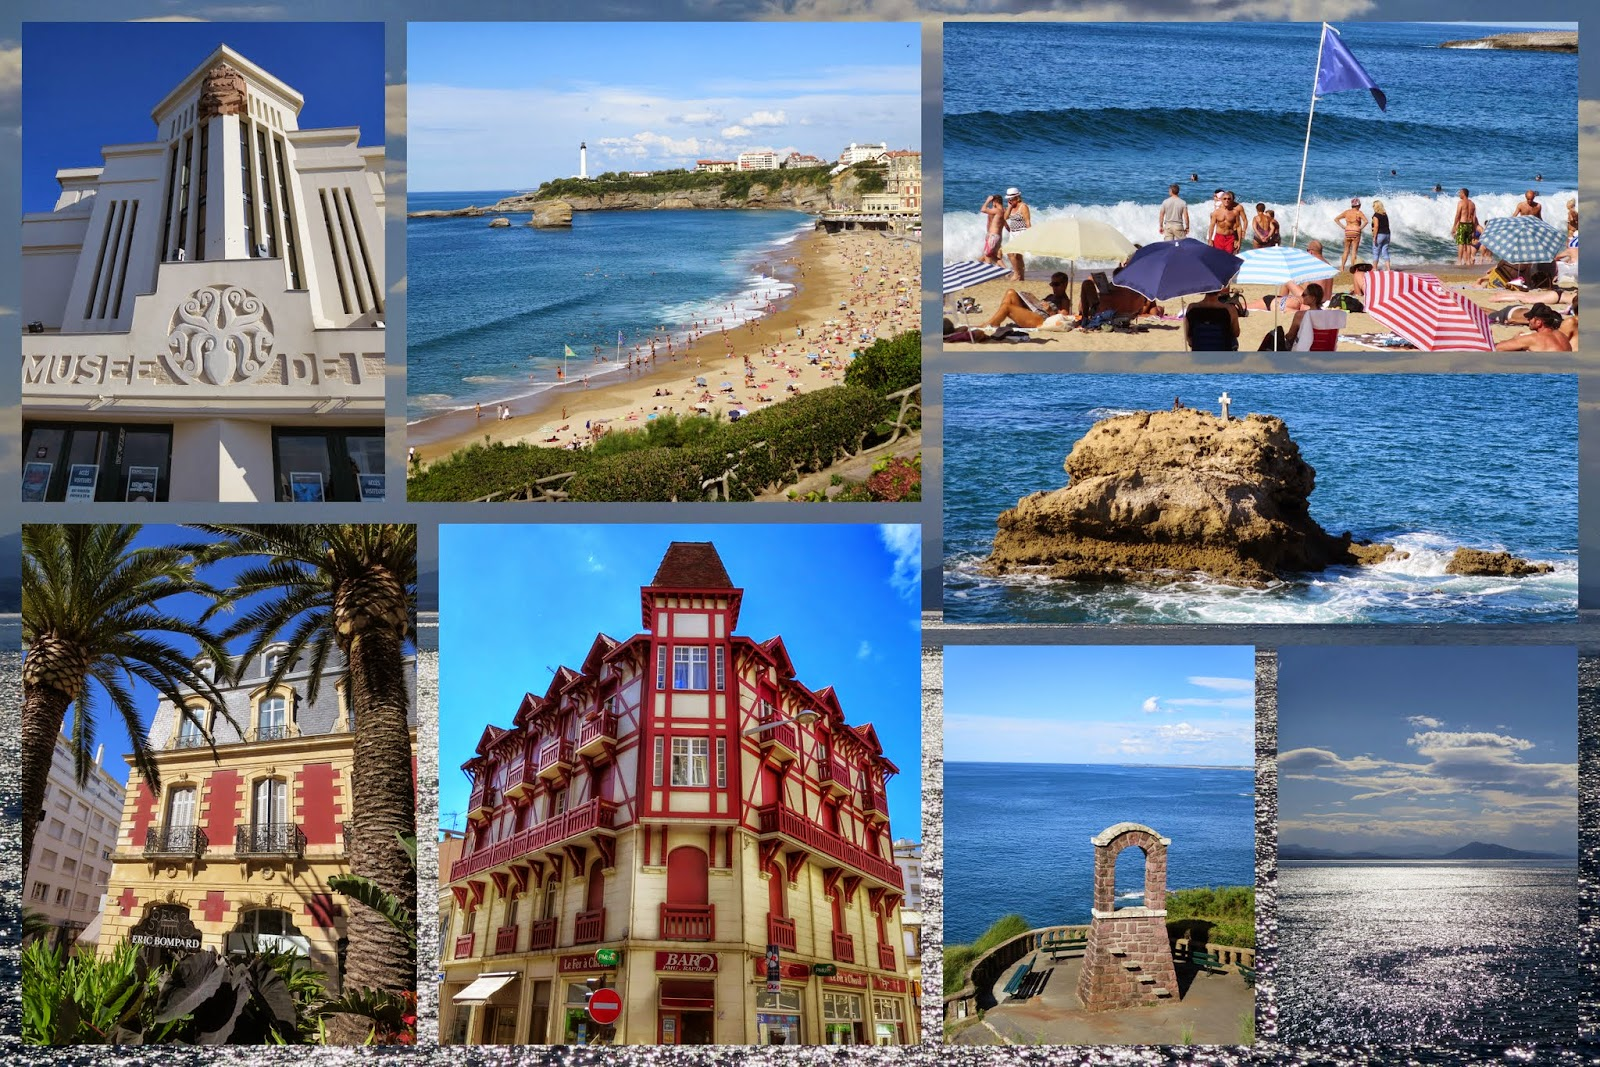 A Weekend in French Basque Country - Biarritz